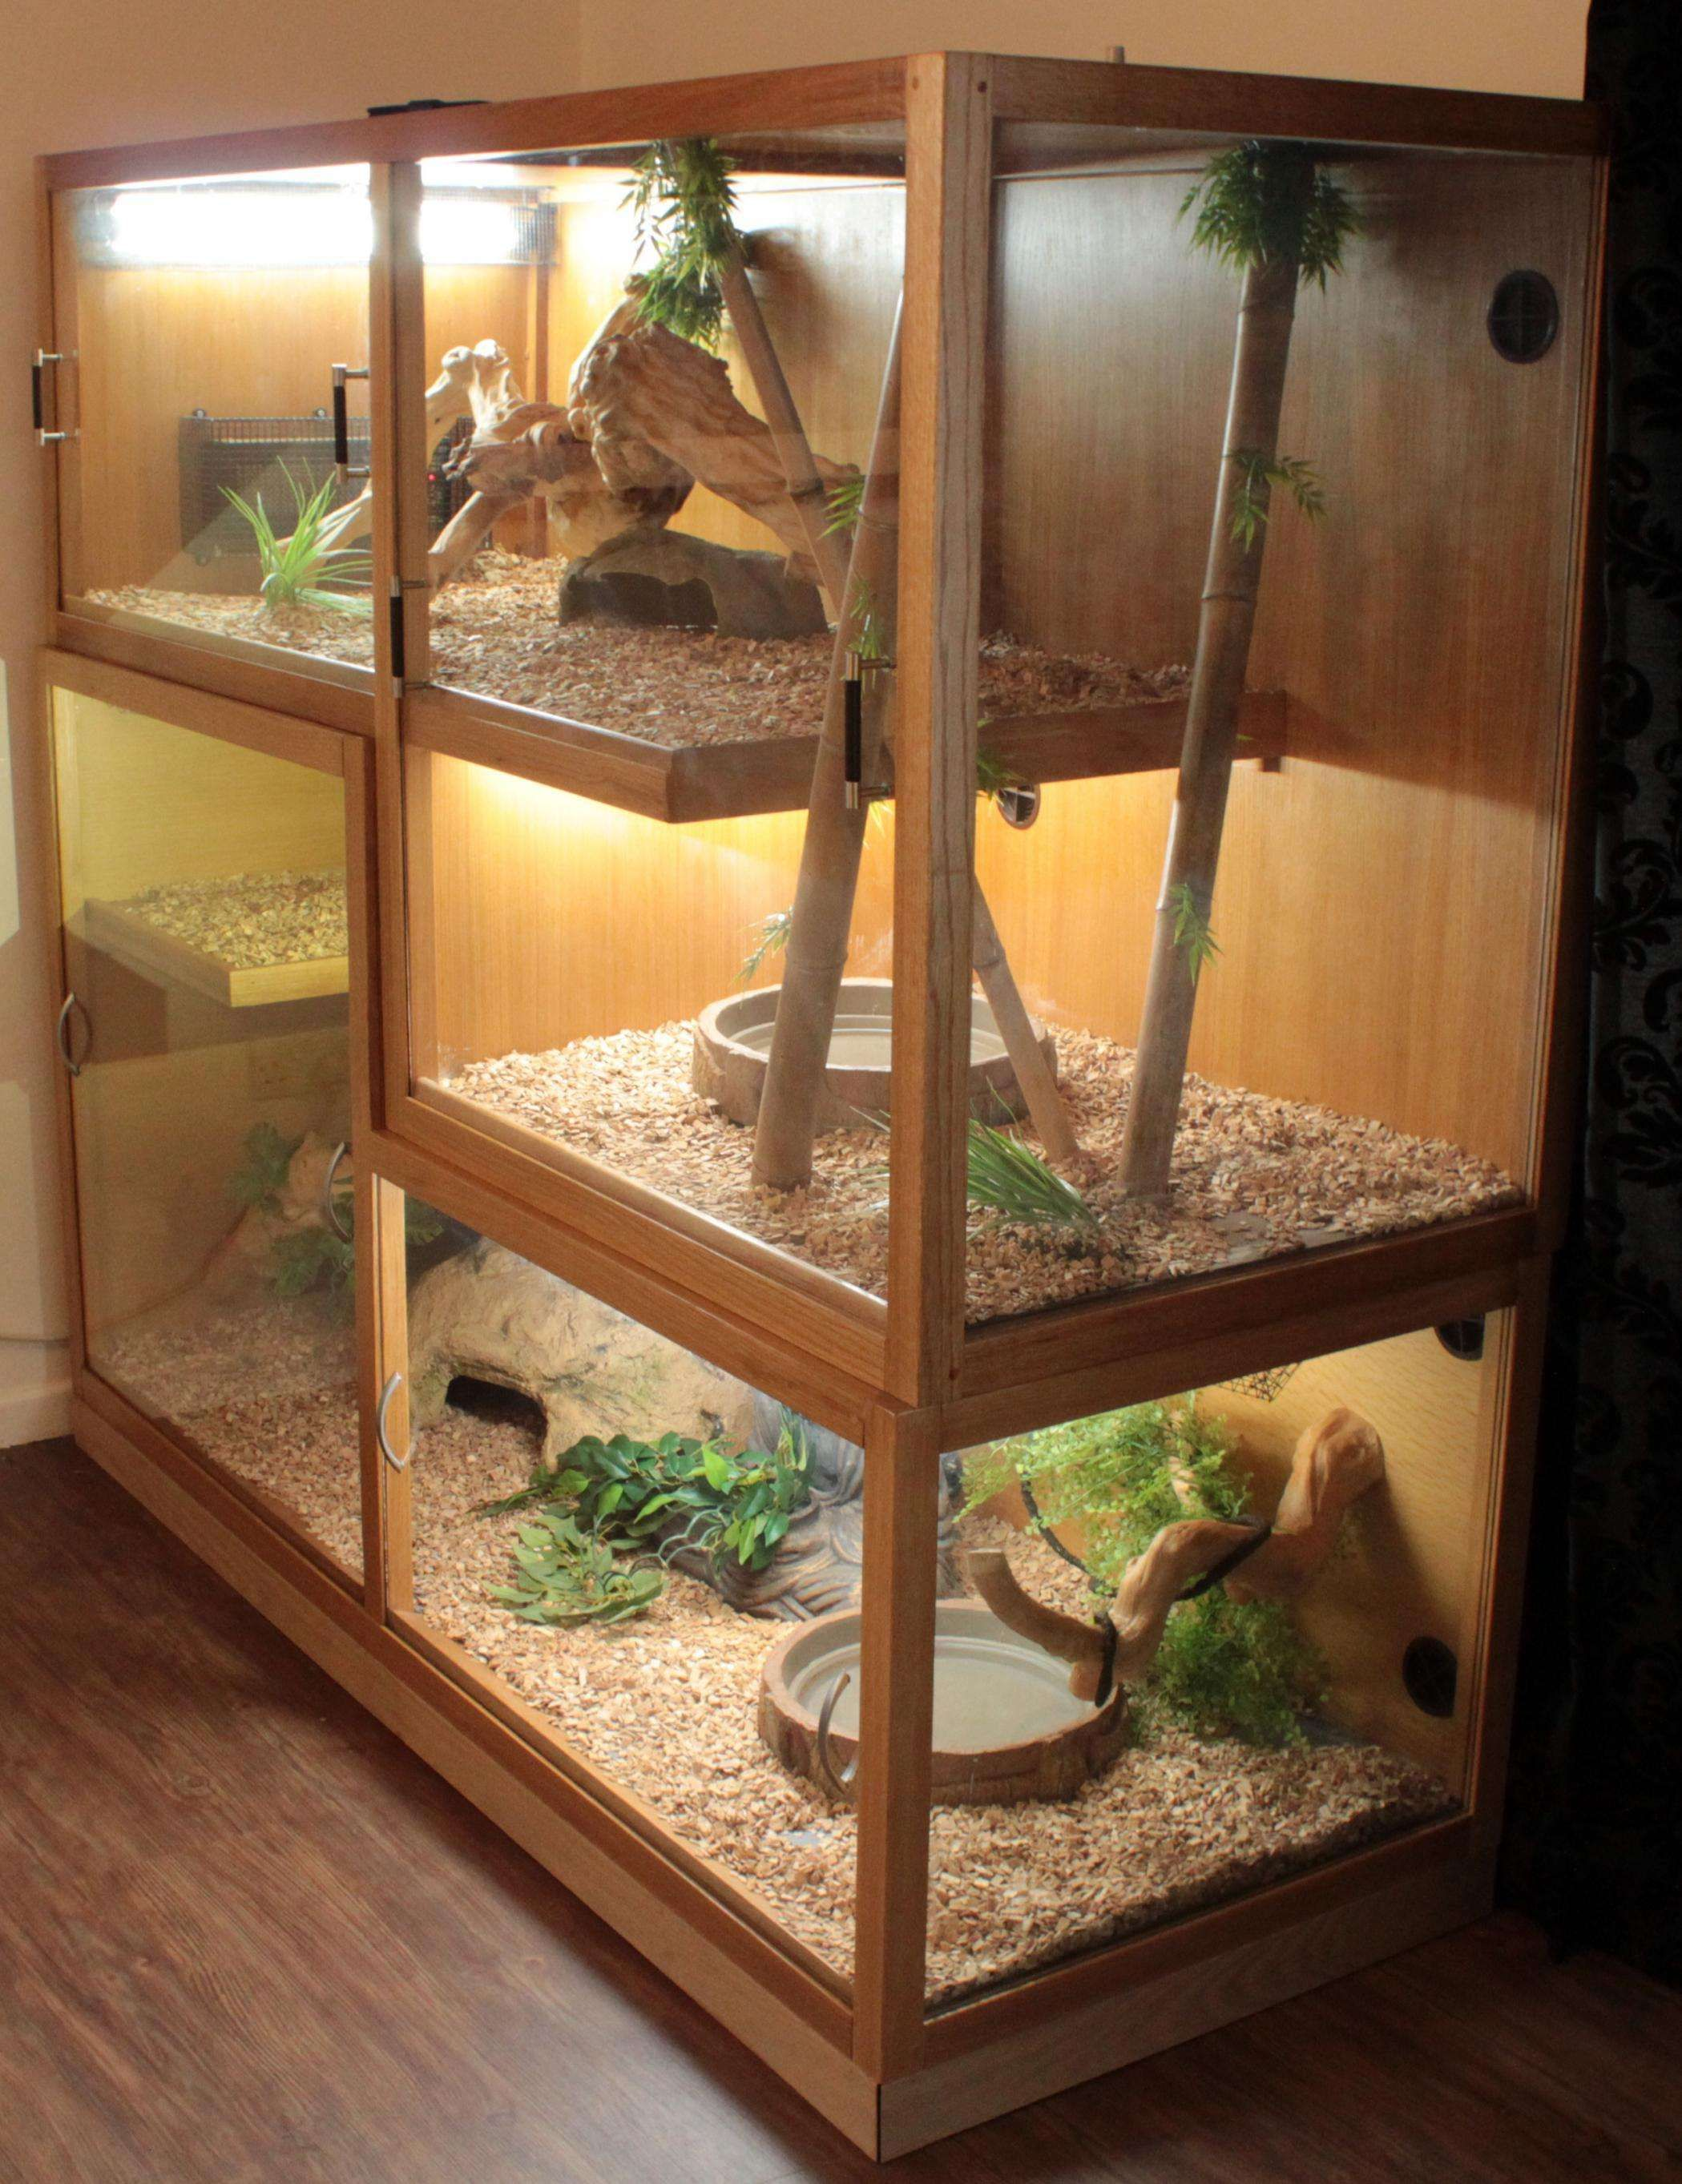 Bearded Dragon Habitat 40 Bearded Dragon Bearded Dragon Habitat